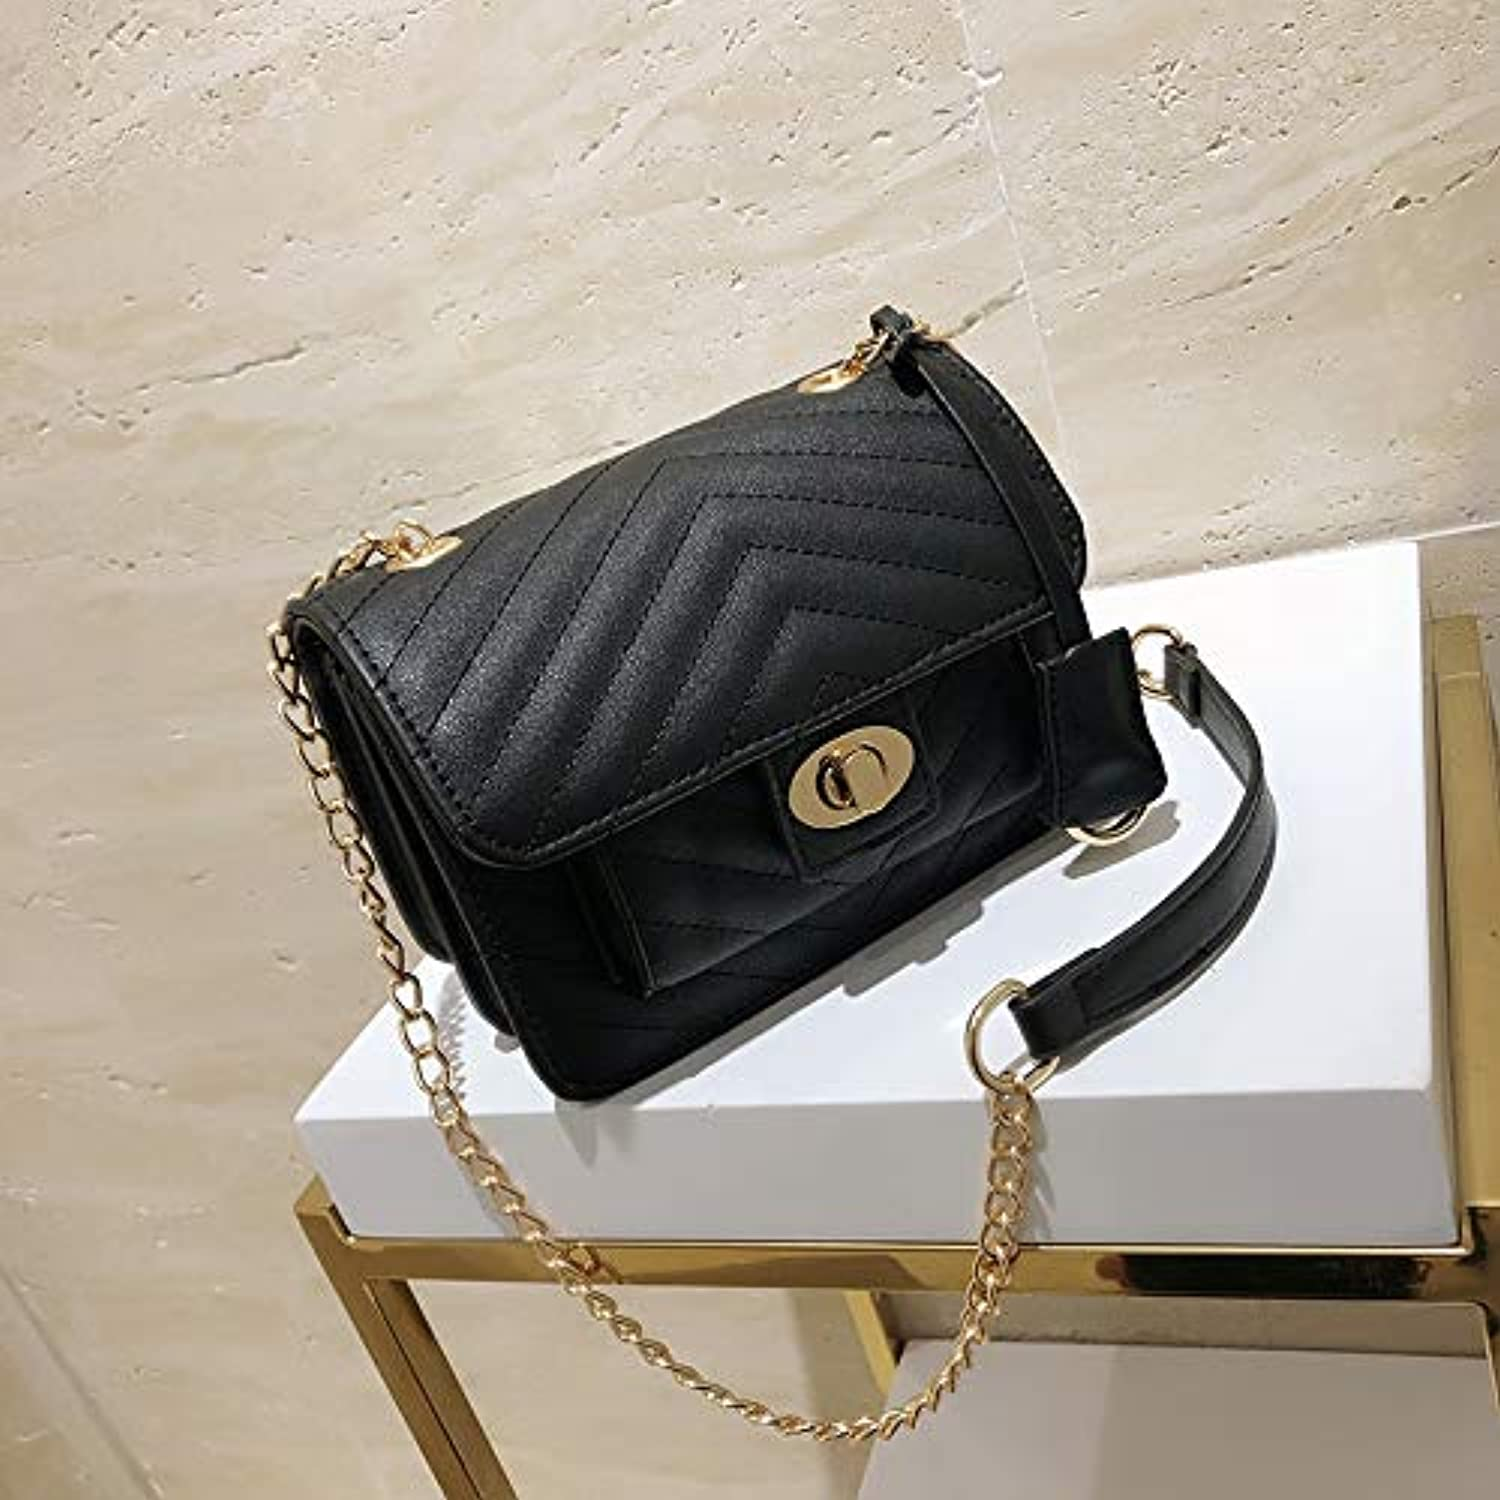 WANGZHAO Pure color Chain Small Square Bag Joker Fashion Single Shoulder Bag Small Bag